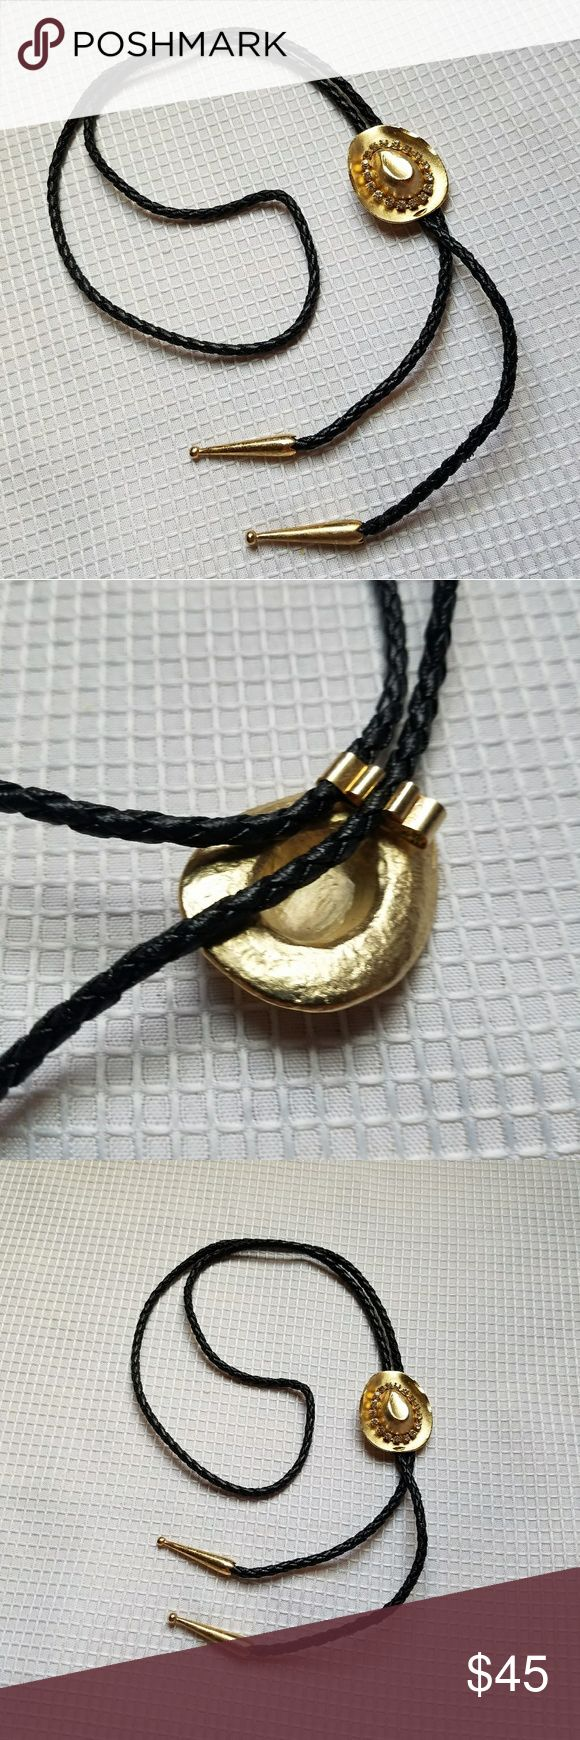 VTG GOLD Rhinestone Bling Cowboy Hat Bolo Tie Rock out with this vintage cowgirl western accessory. Leather-like black braided cording with gold tone hardware and a golden hat with gemstones inside the brim. Has a handmade quality with the etching on the metal. Bought from an estate sale, has a nice weight to it and in great vintage condition with minimal scratching. Metallic southwest southwestern horse riding style rodeo perfect for a collector of hat trinkets shiny Jewelry Necklaces